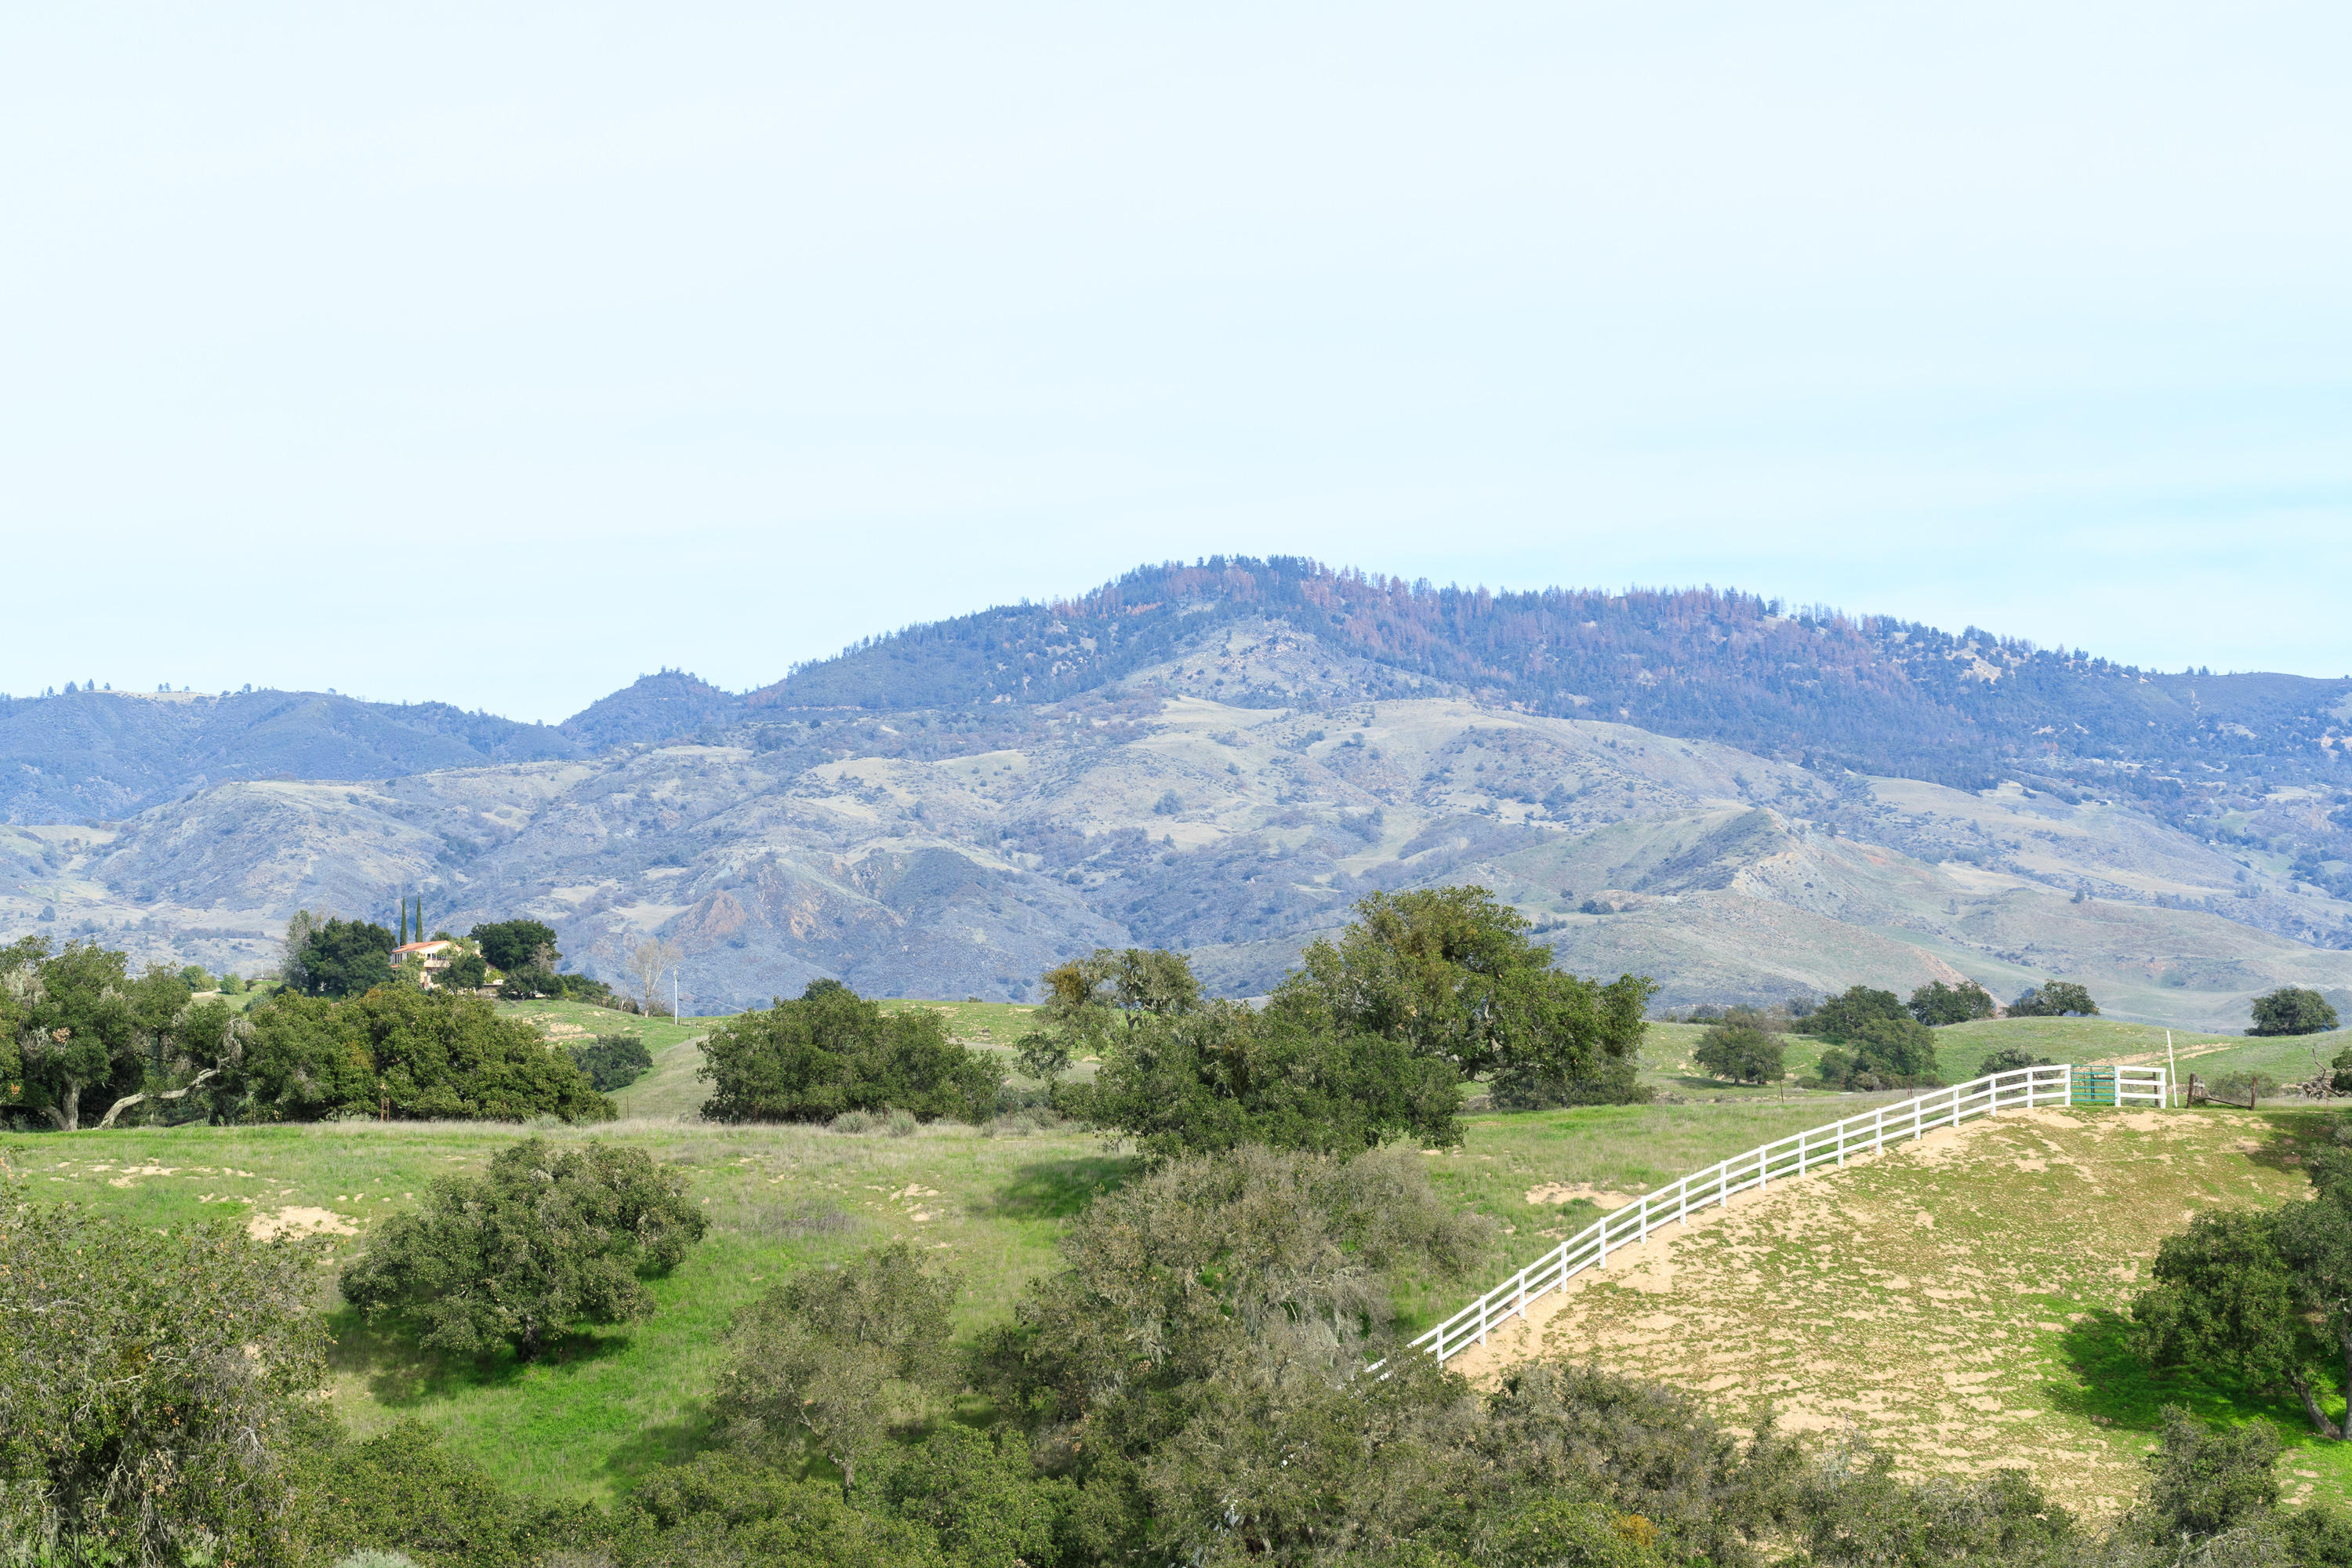 Property photo for E Oak Trail Road Santa Ynez, California 93460 - 17-328